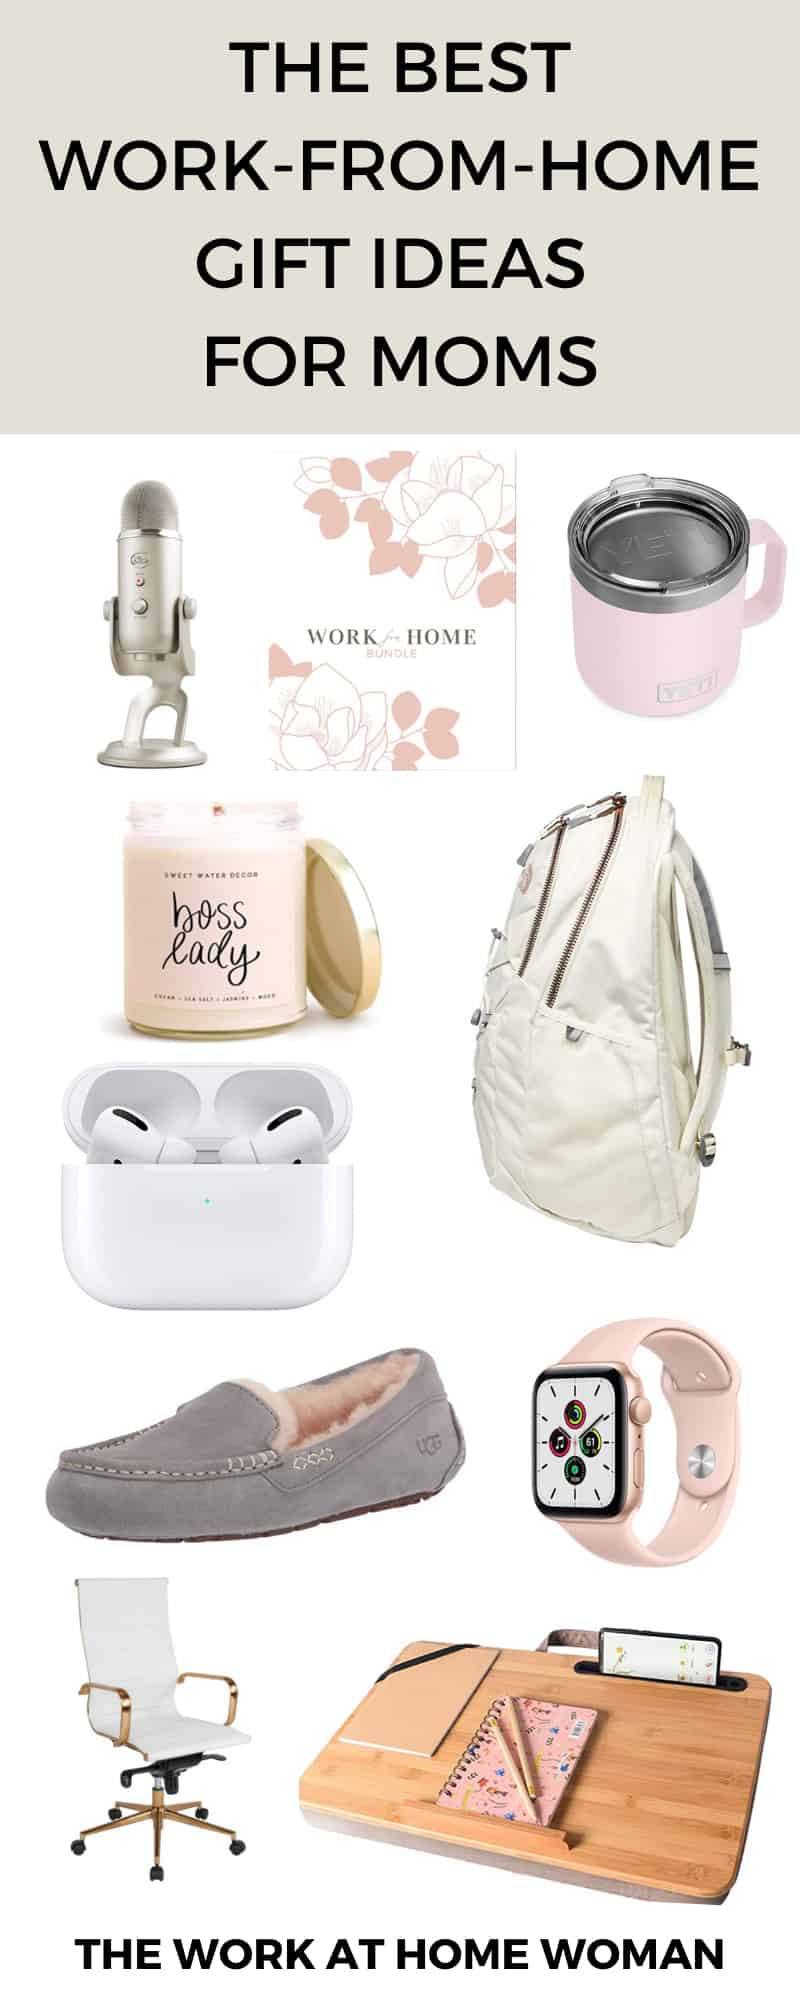 If you're looking for the perfect present for the work-from-home mom in your life, check out this list of unique gift ideas perfect for moms! #giftguide #ideas #workfromhome via @TheWorkatHomeWoman